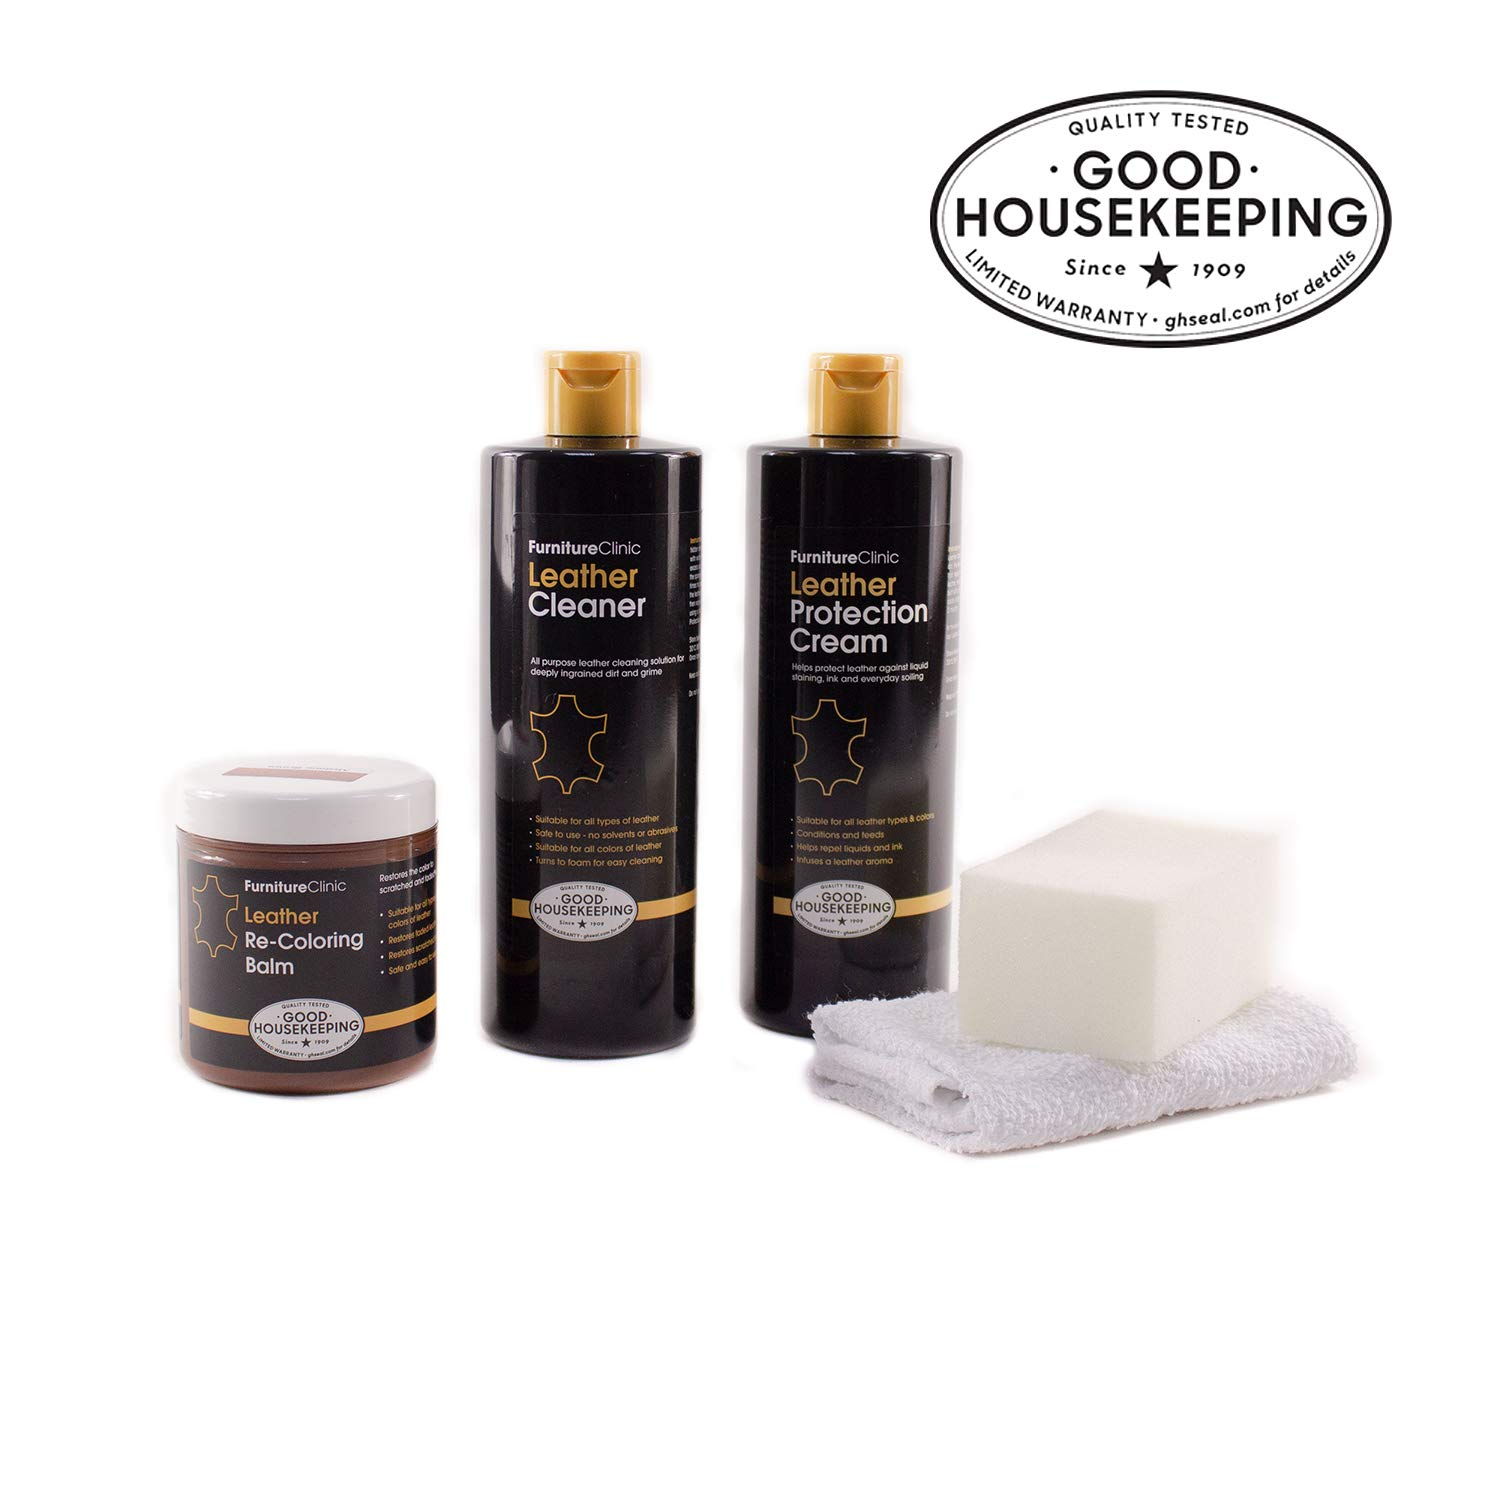 Furniture Clinic Leather Complete Restoration Kit - Set Includes Leather Recoloring Balm, Protection Cream, Cleaner, Sponge and Cloth - Restore and Repair Sofas, Car Seats and More (Dark Brown)